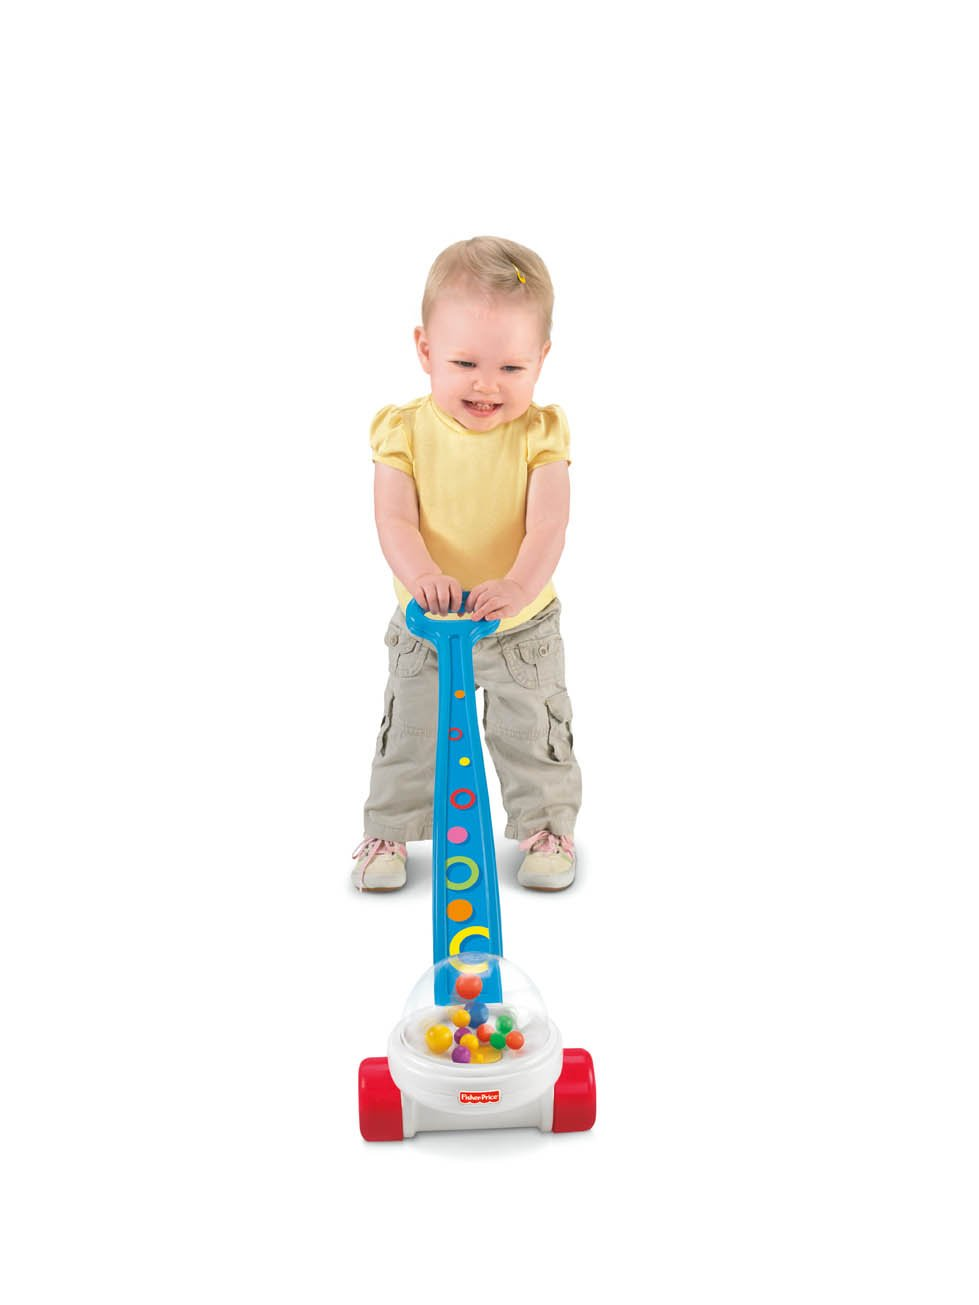 Best Boy Toys Age 2 : Hot christmas gifts best toys for baby boys age — kathln